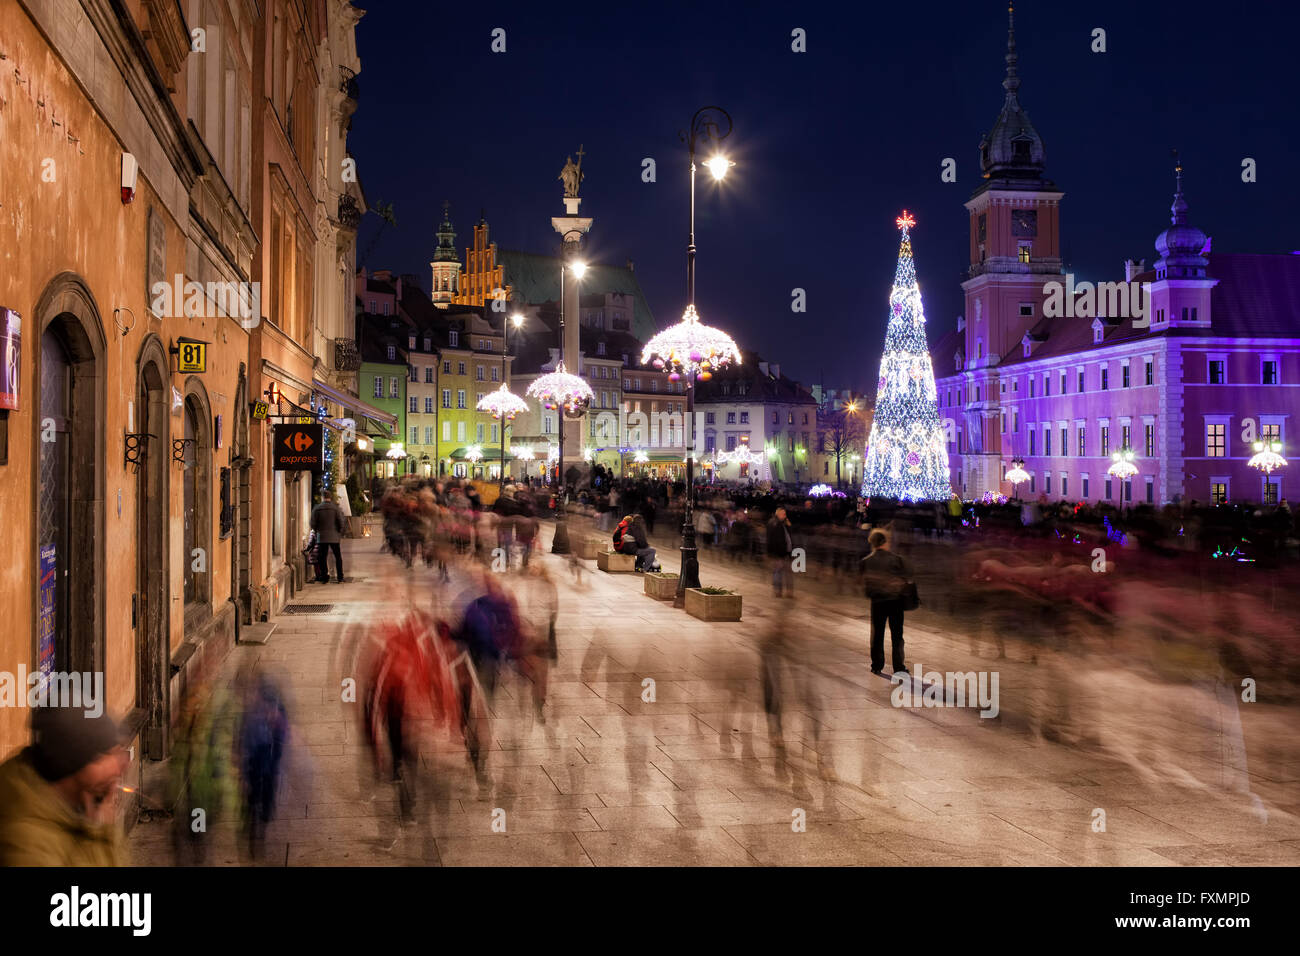 Warsaw by night in Poland, Old Town Square, Royal Castle, people, tourists crowd, city break, city life, Christmas - Stock Image